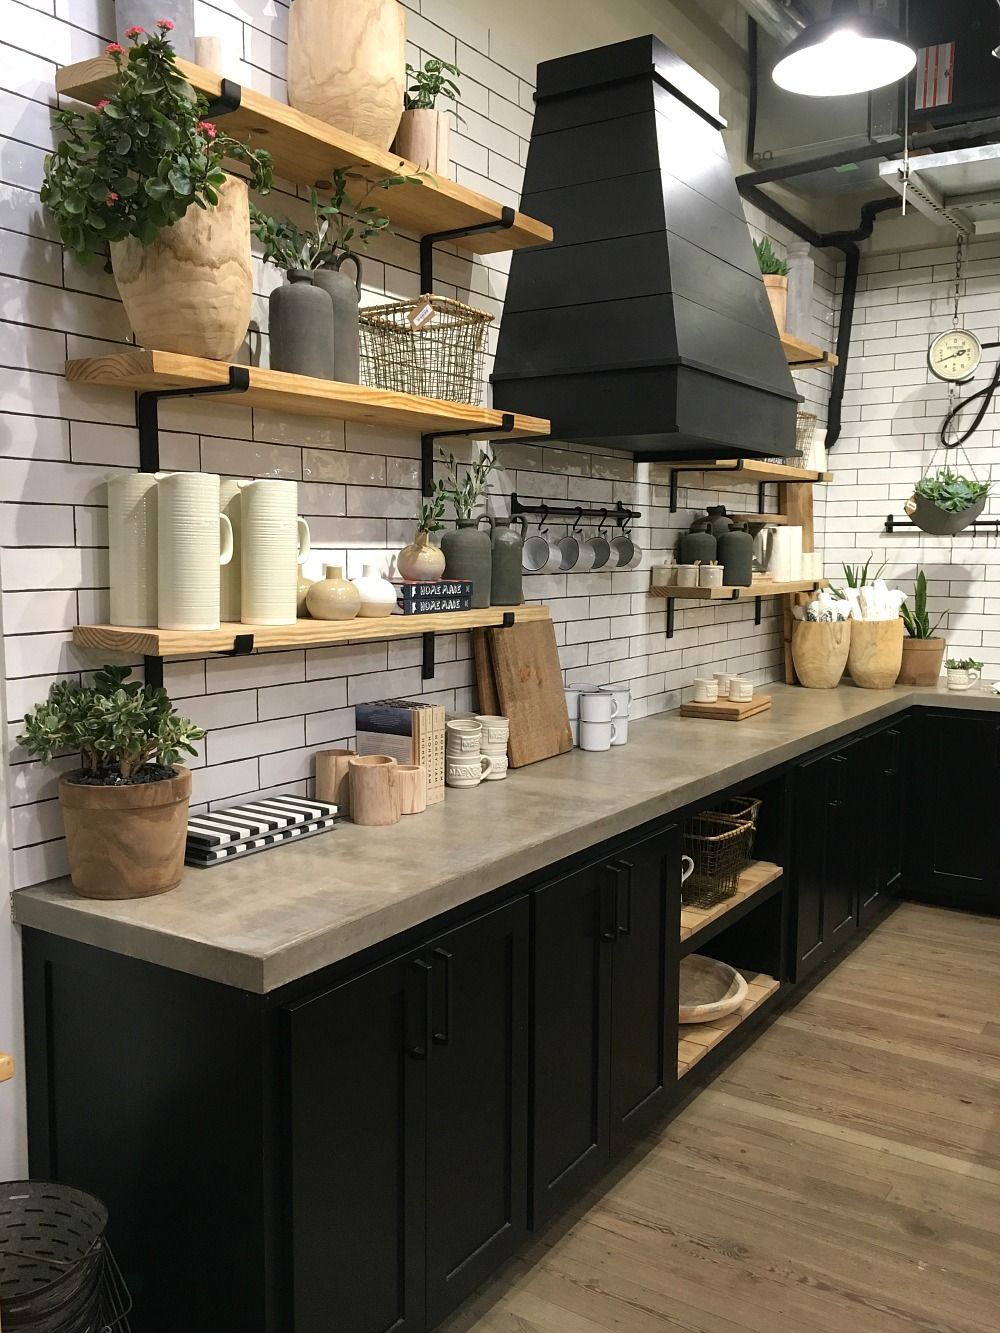 Beautiful farmhouse style kitchen at magnolia market things to know before you visit also open shelves decorating ideas design rh pinterest